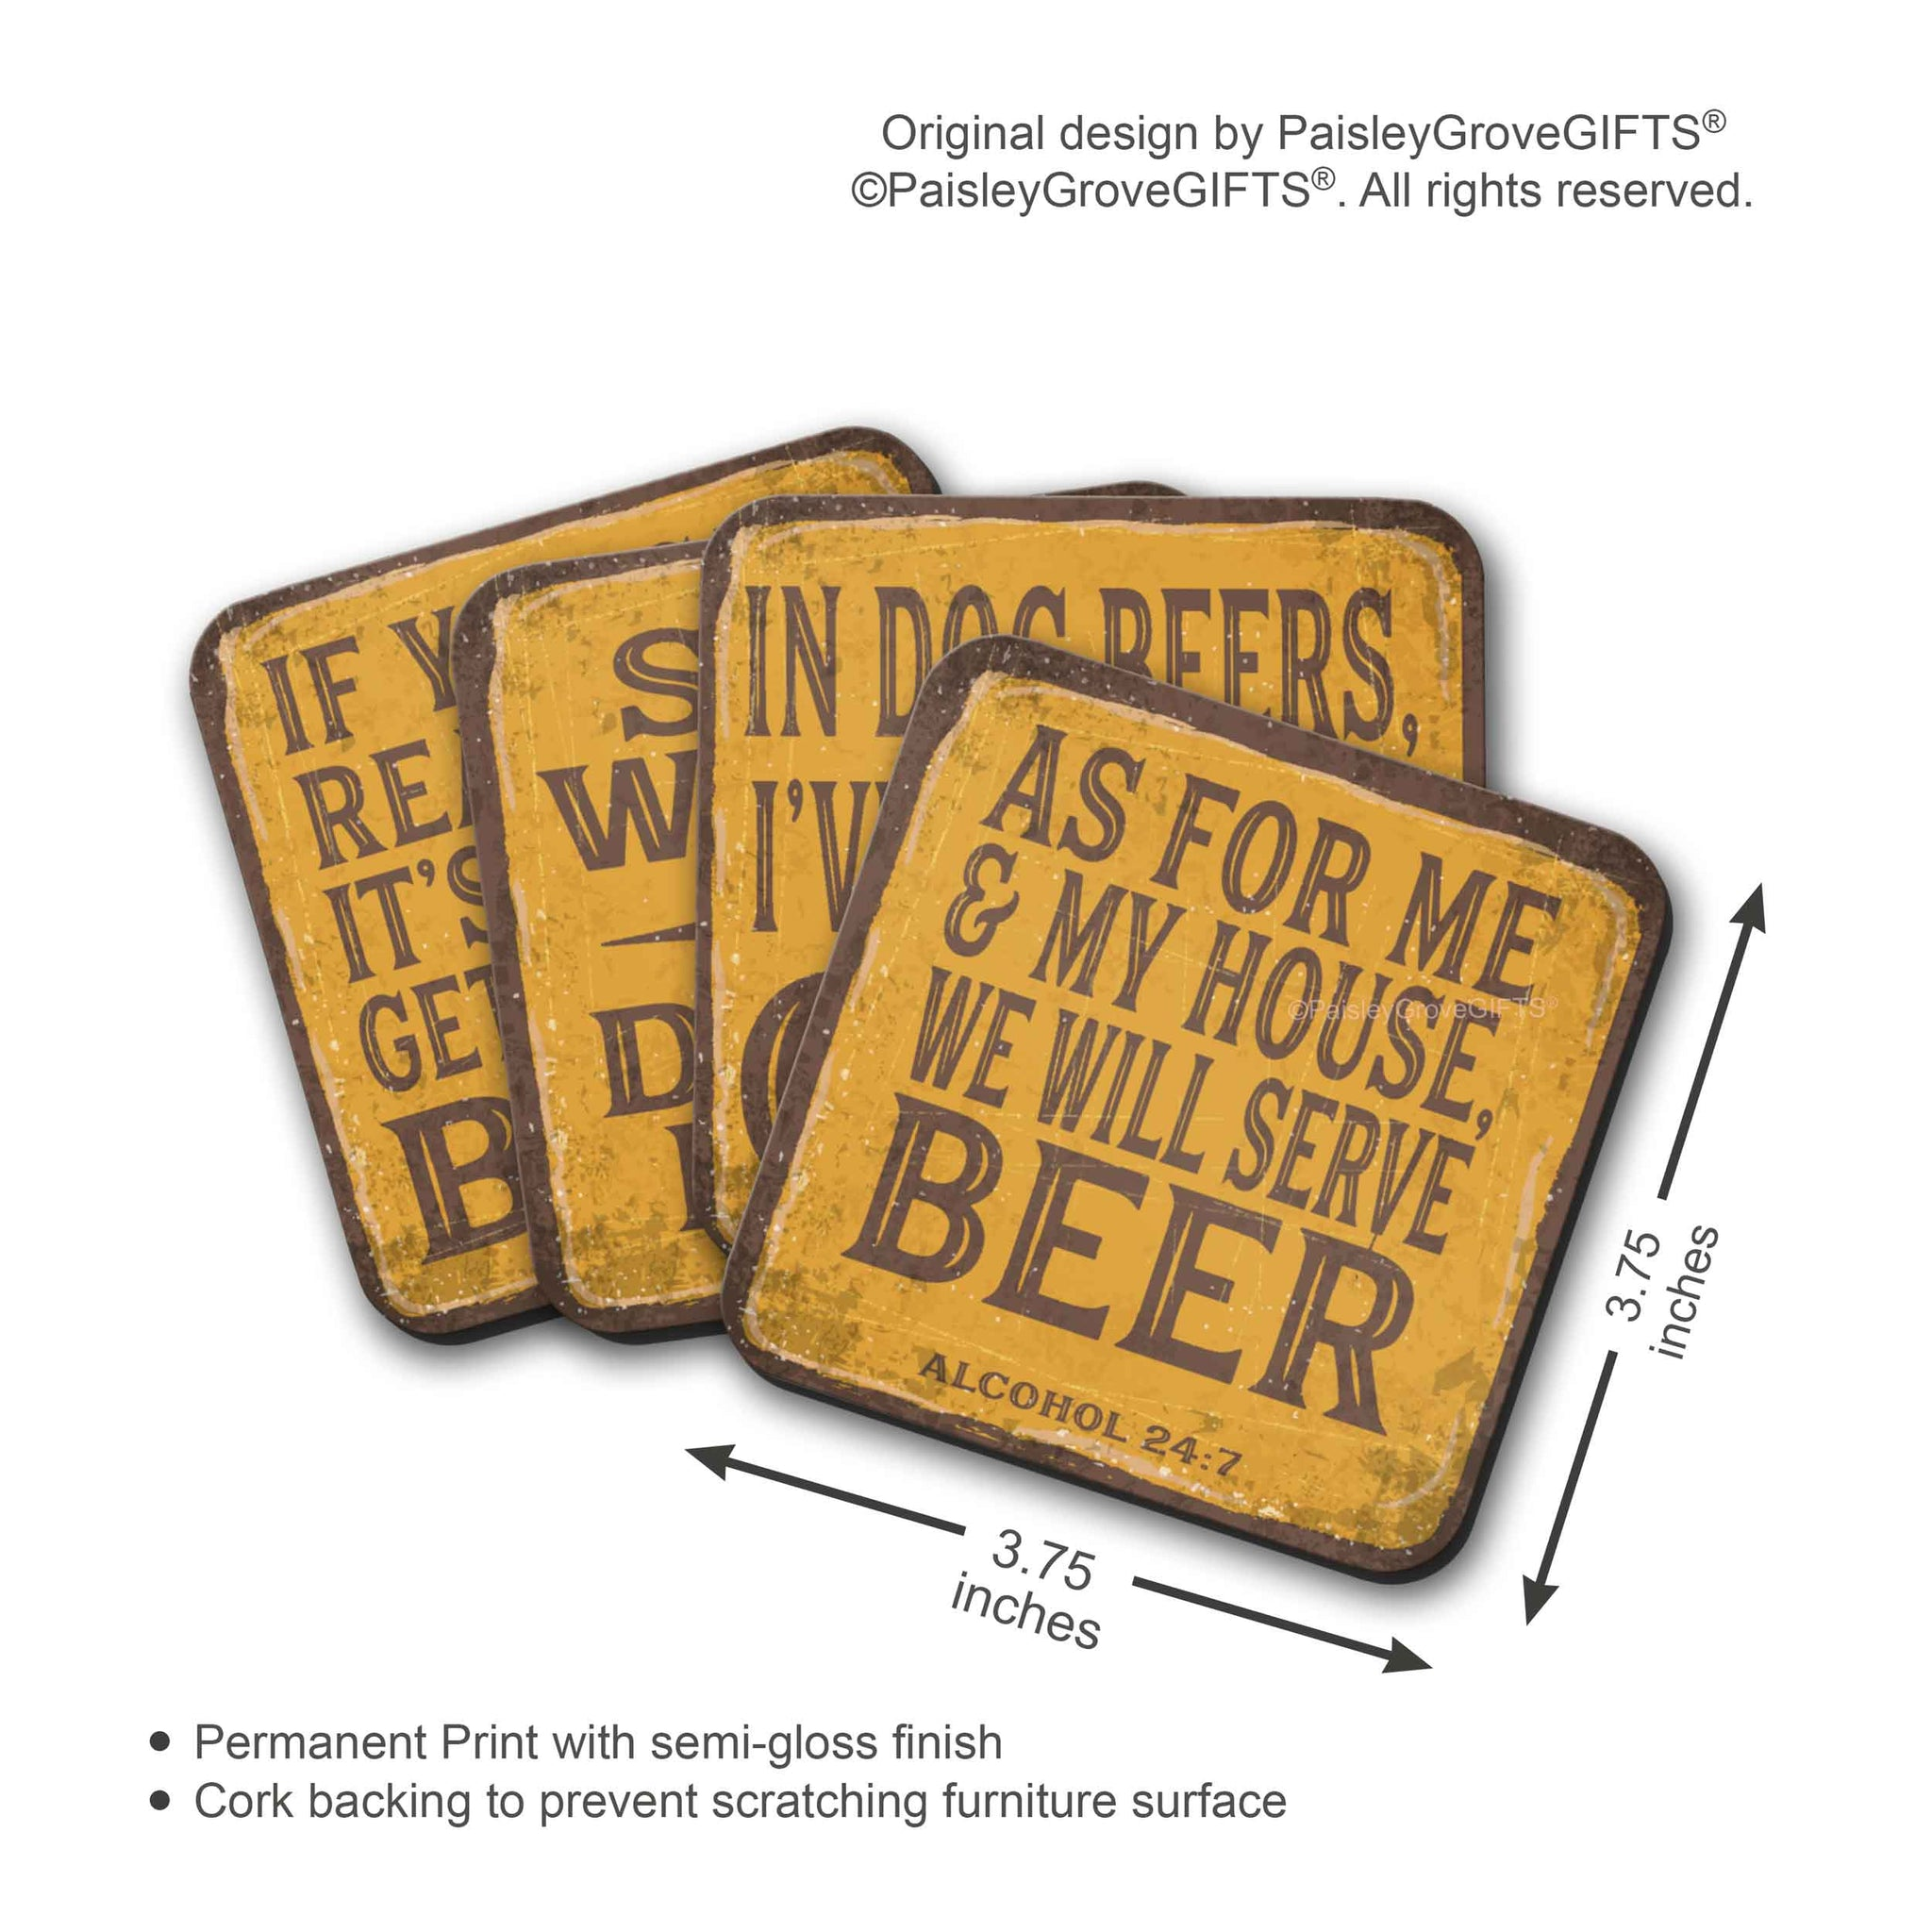 CopyrightPaisleyGroveGIFTS S700adgh Measurement and Detailed Information for Beer and  Drink Coasters for Beer Lovers